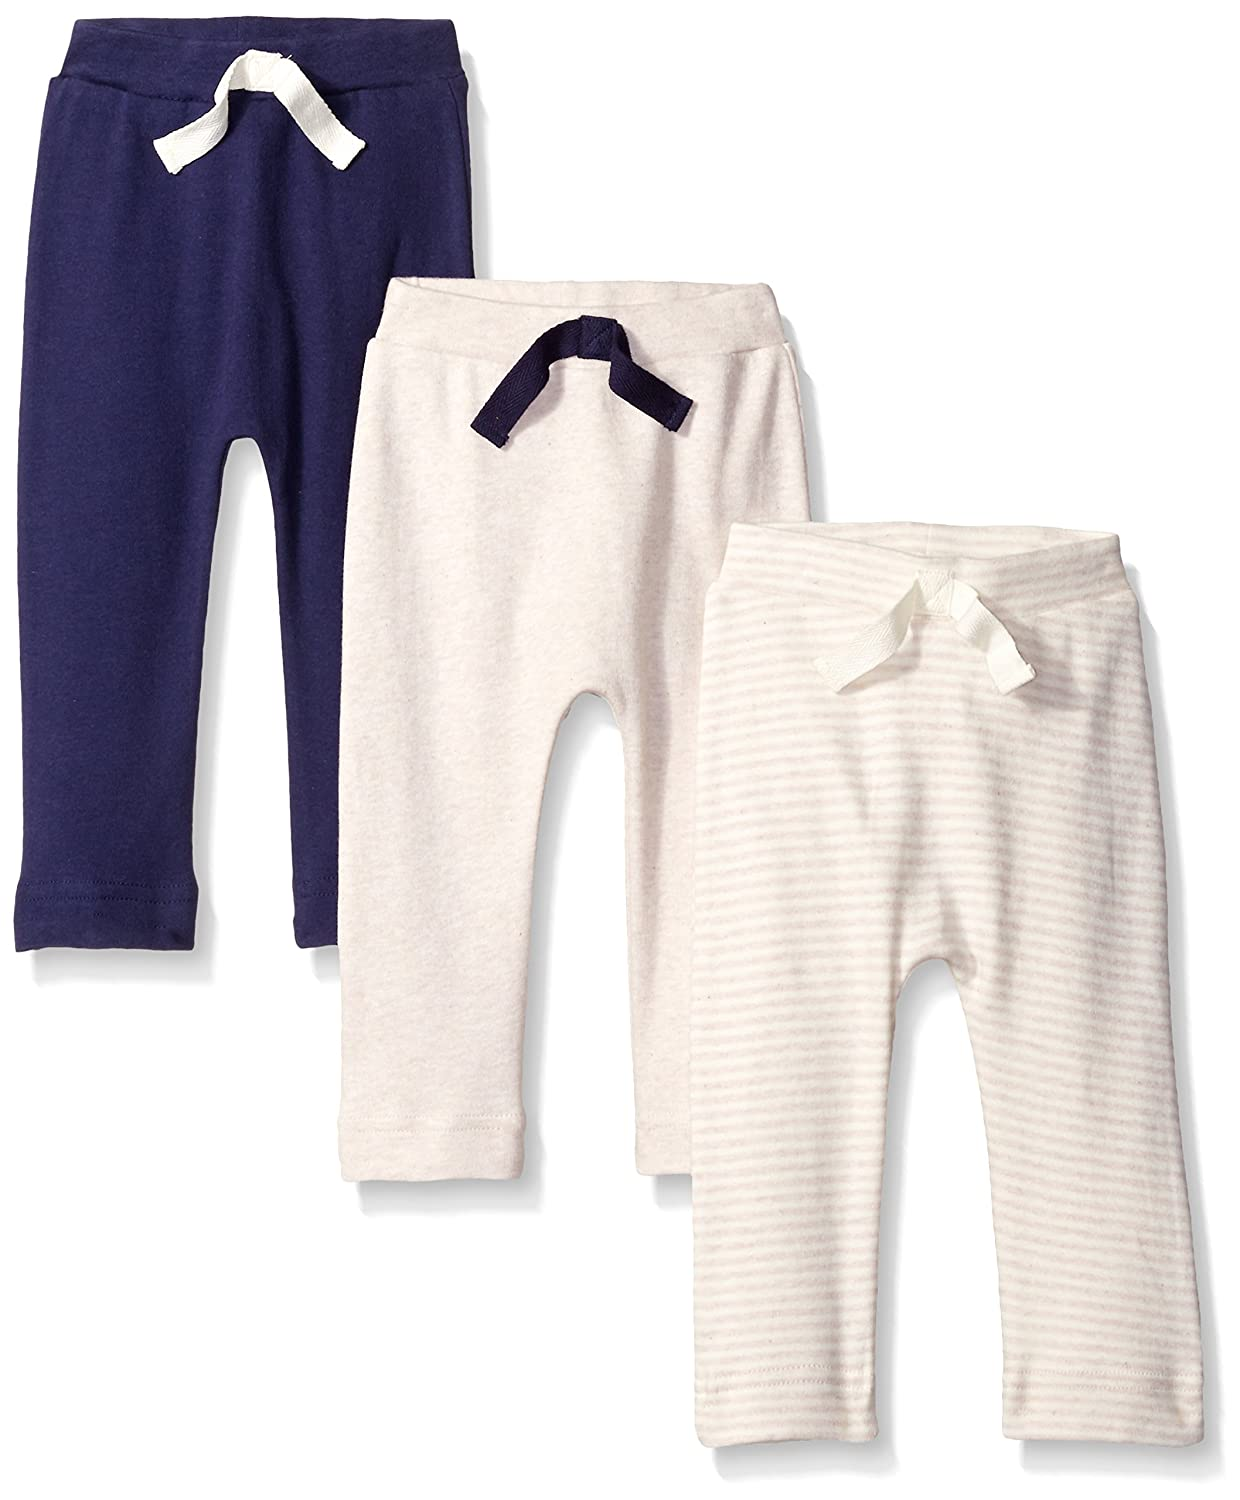 Touched by Nature PANTS ユニセックスベビー M oatmeal/navy B01M9HSCYY